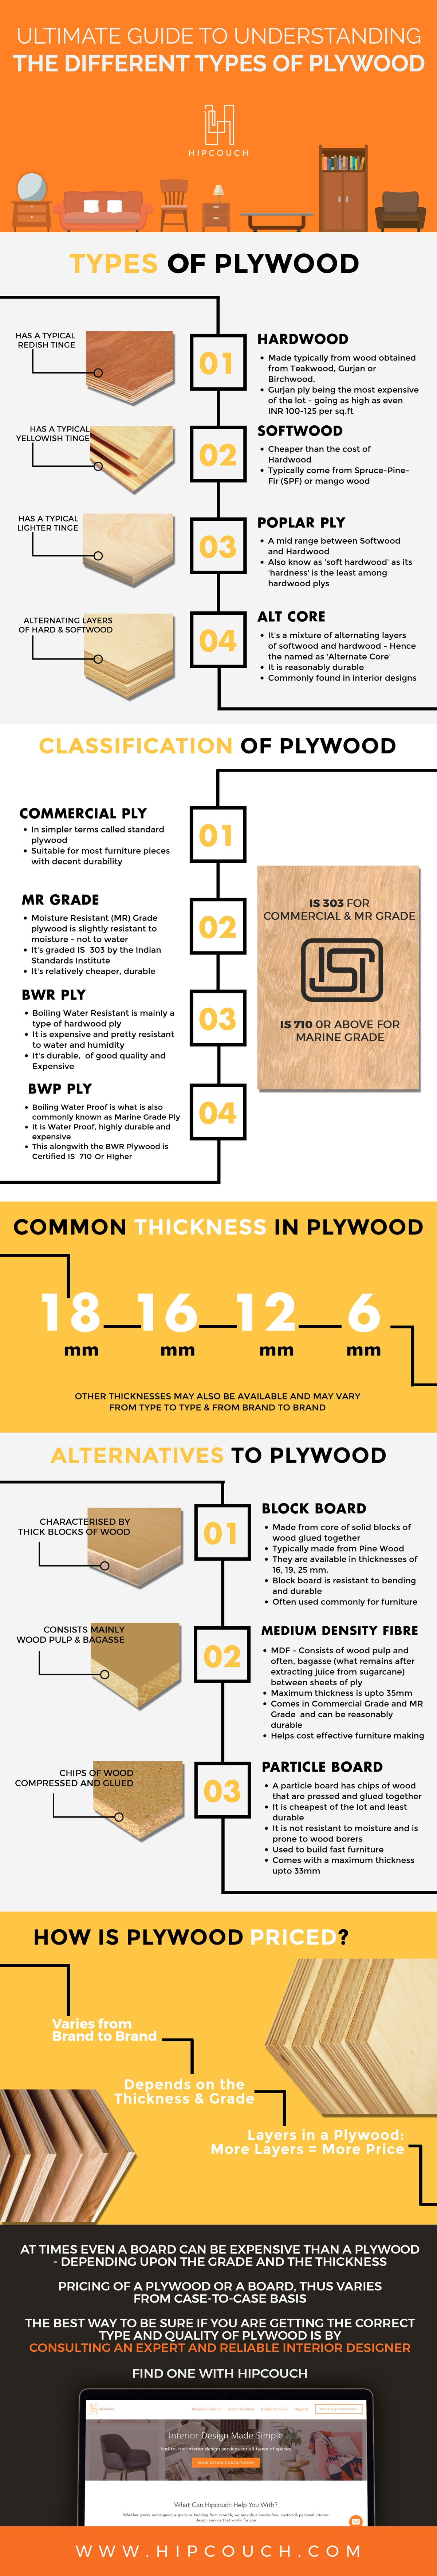 Understand The Different Types of Plywood for Your Furniture - Never Be Cheated Again!